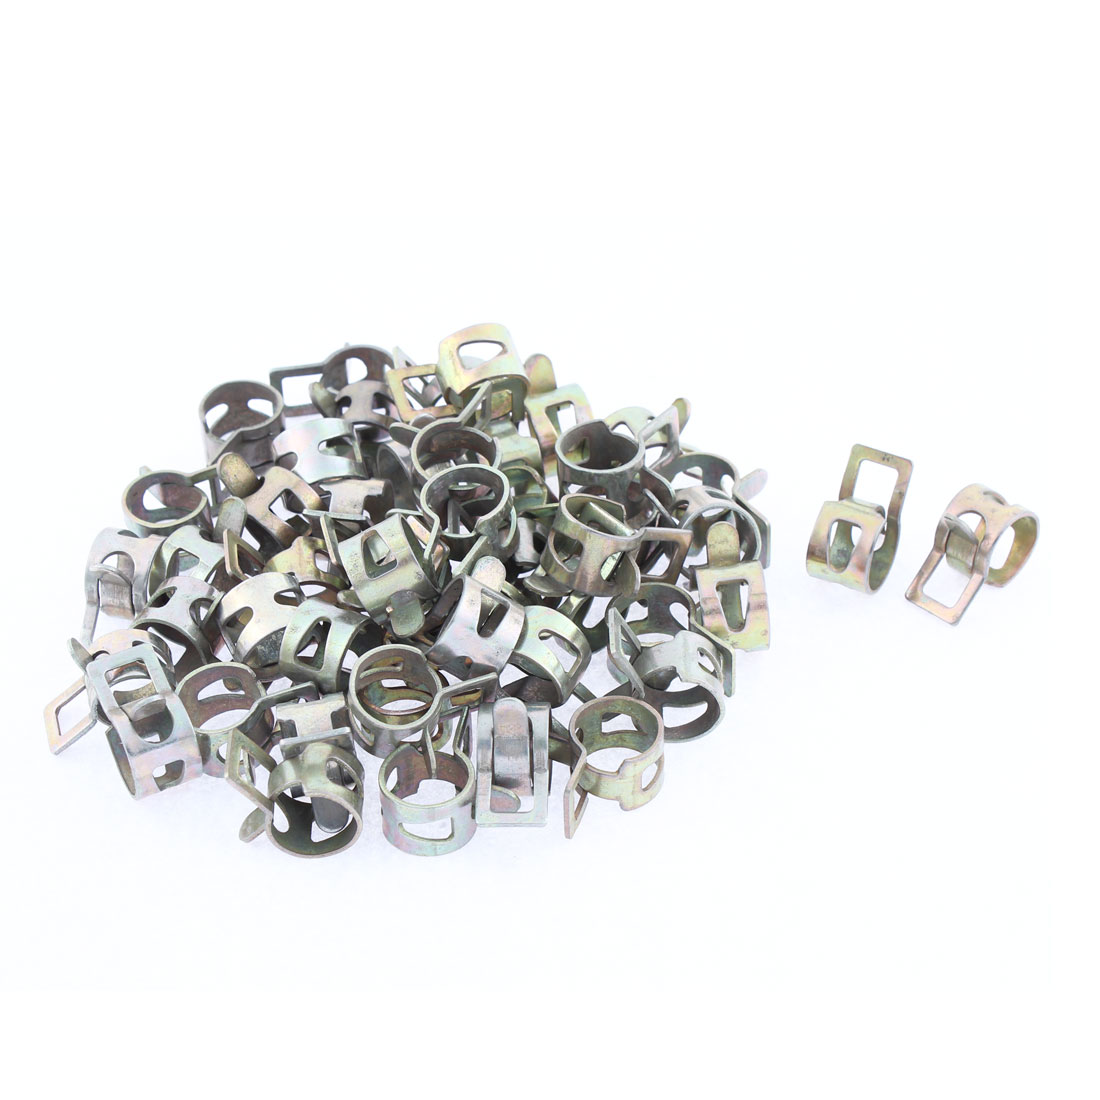 50Pcs Bronze Tone 14mm Dia Breather Overflow Pipe Metal Clips Clamp